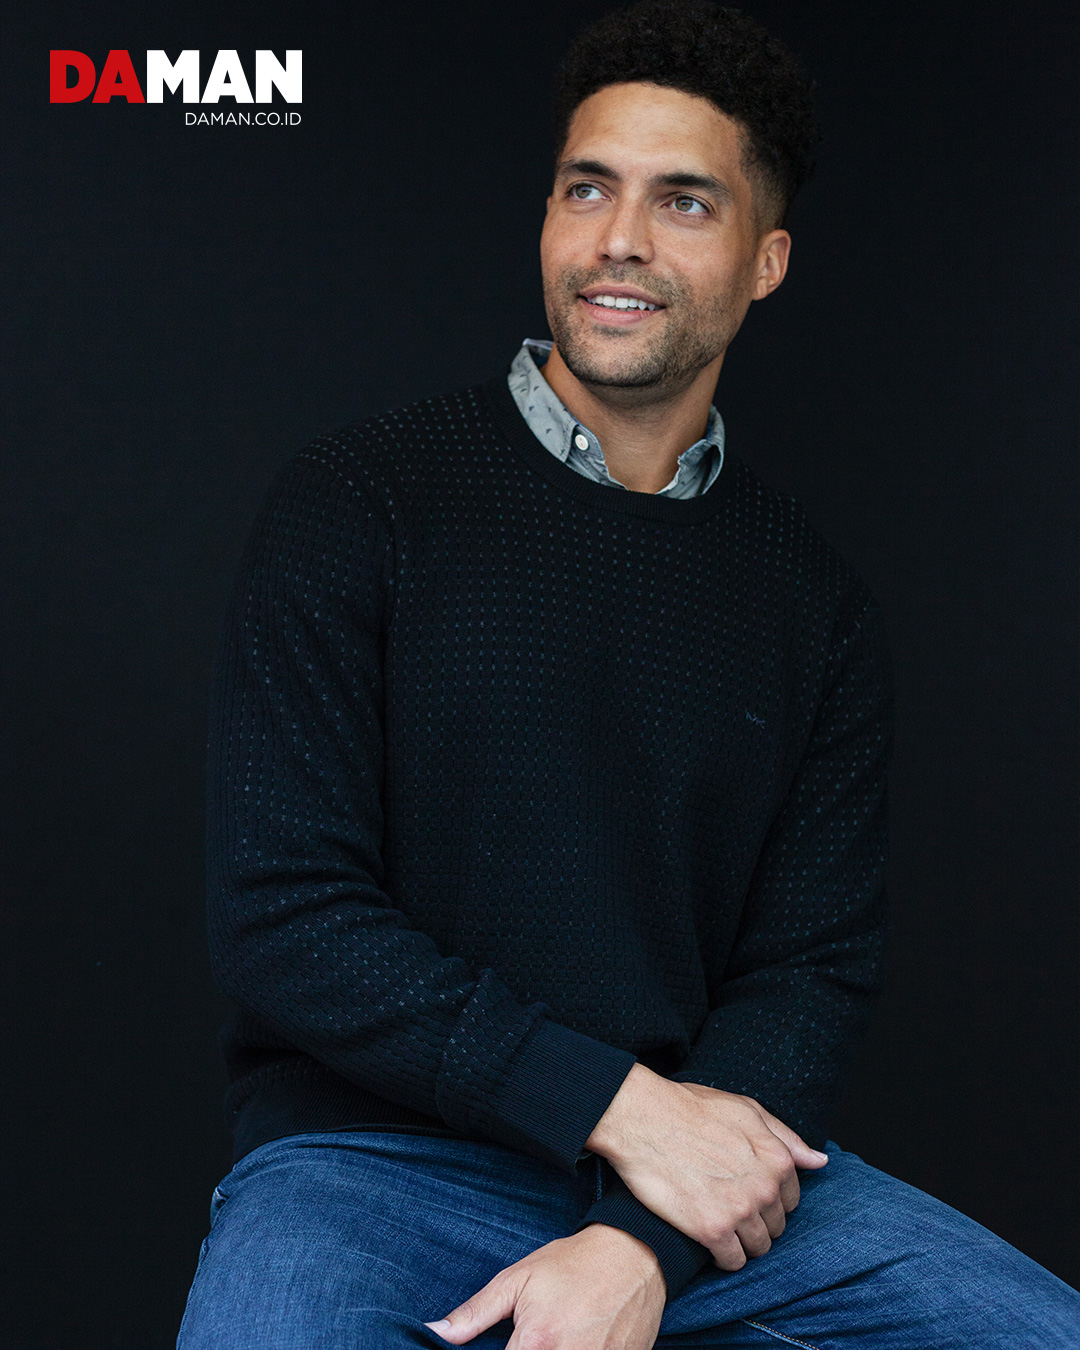 Sweater by Michael Kors; shirt by Rupert & Buckley; pants by Lucky Brand